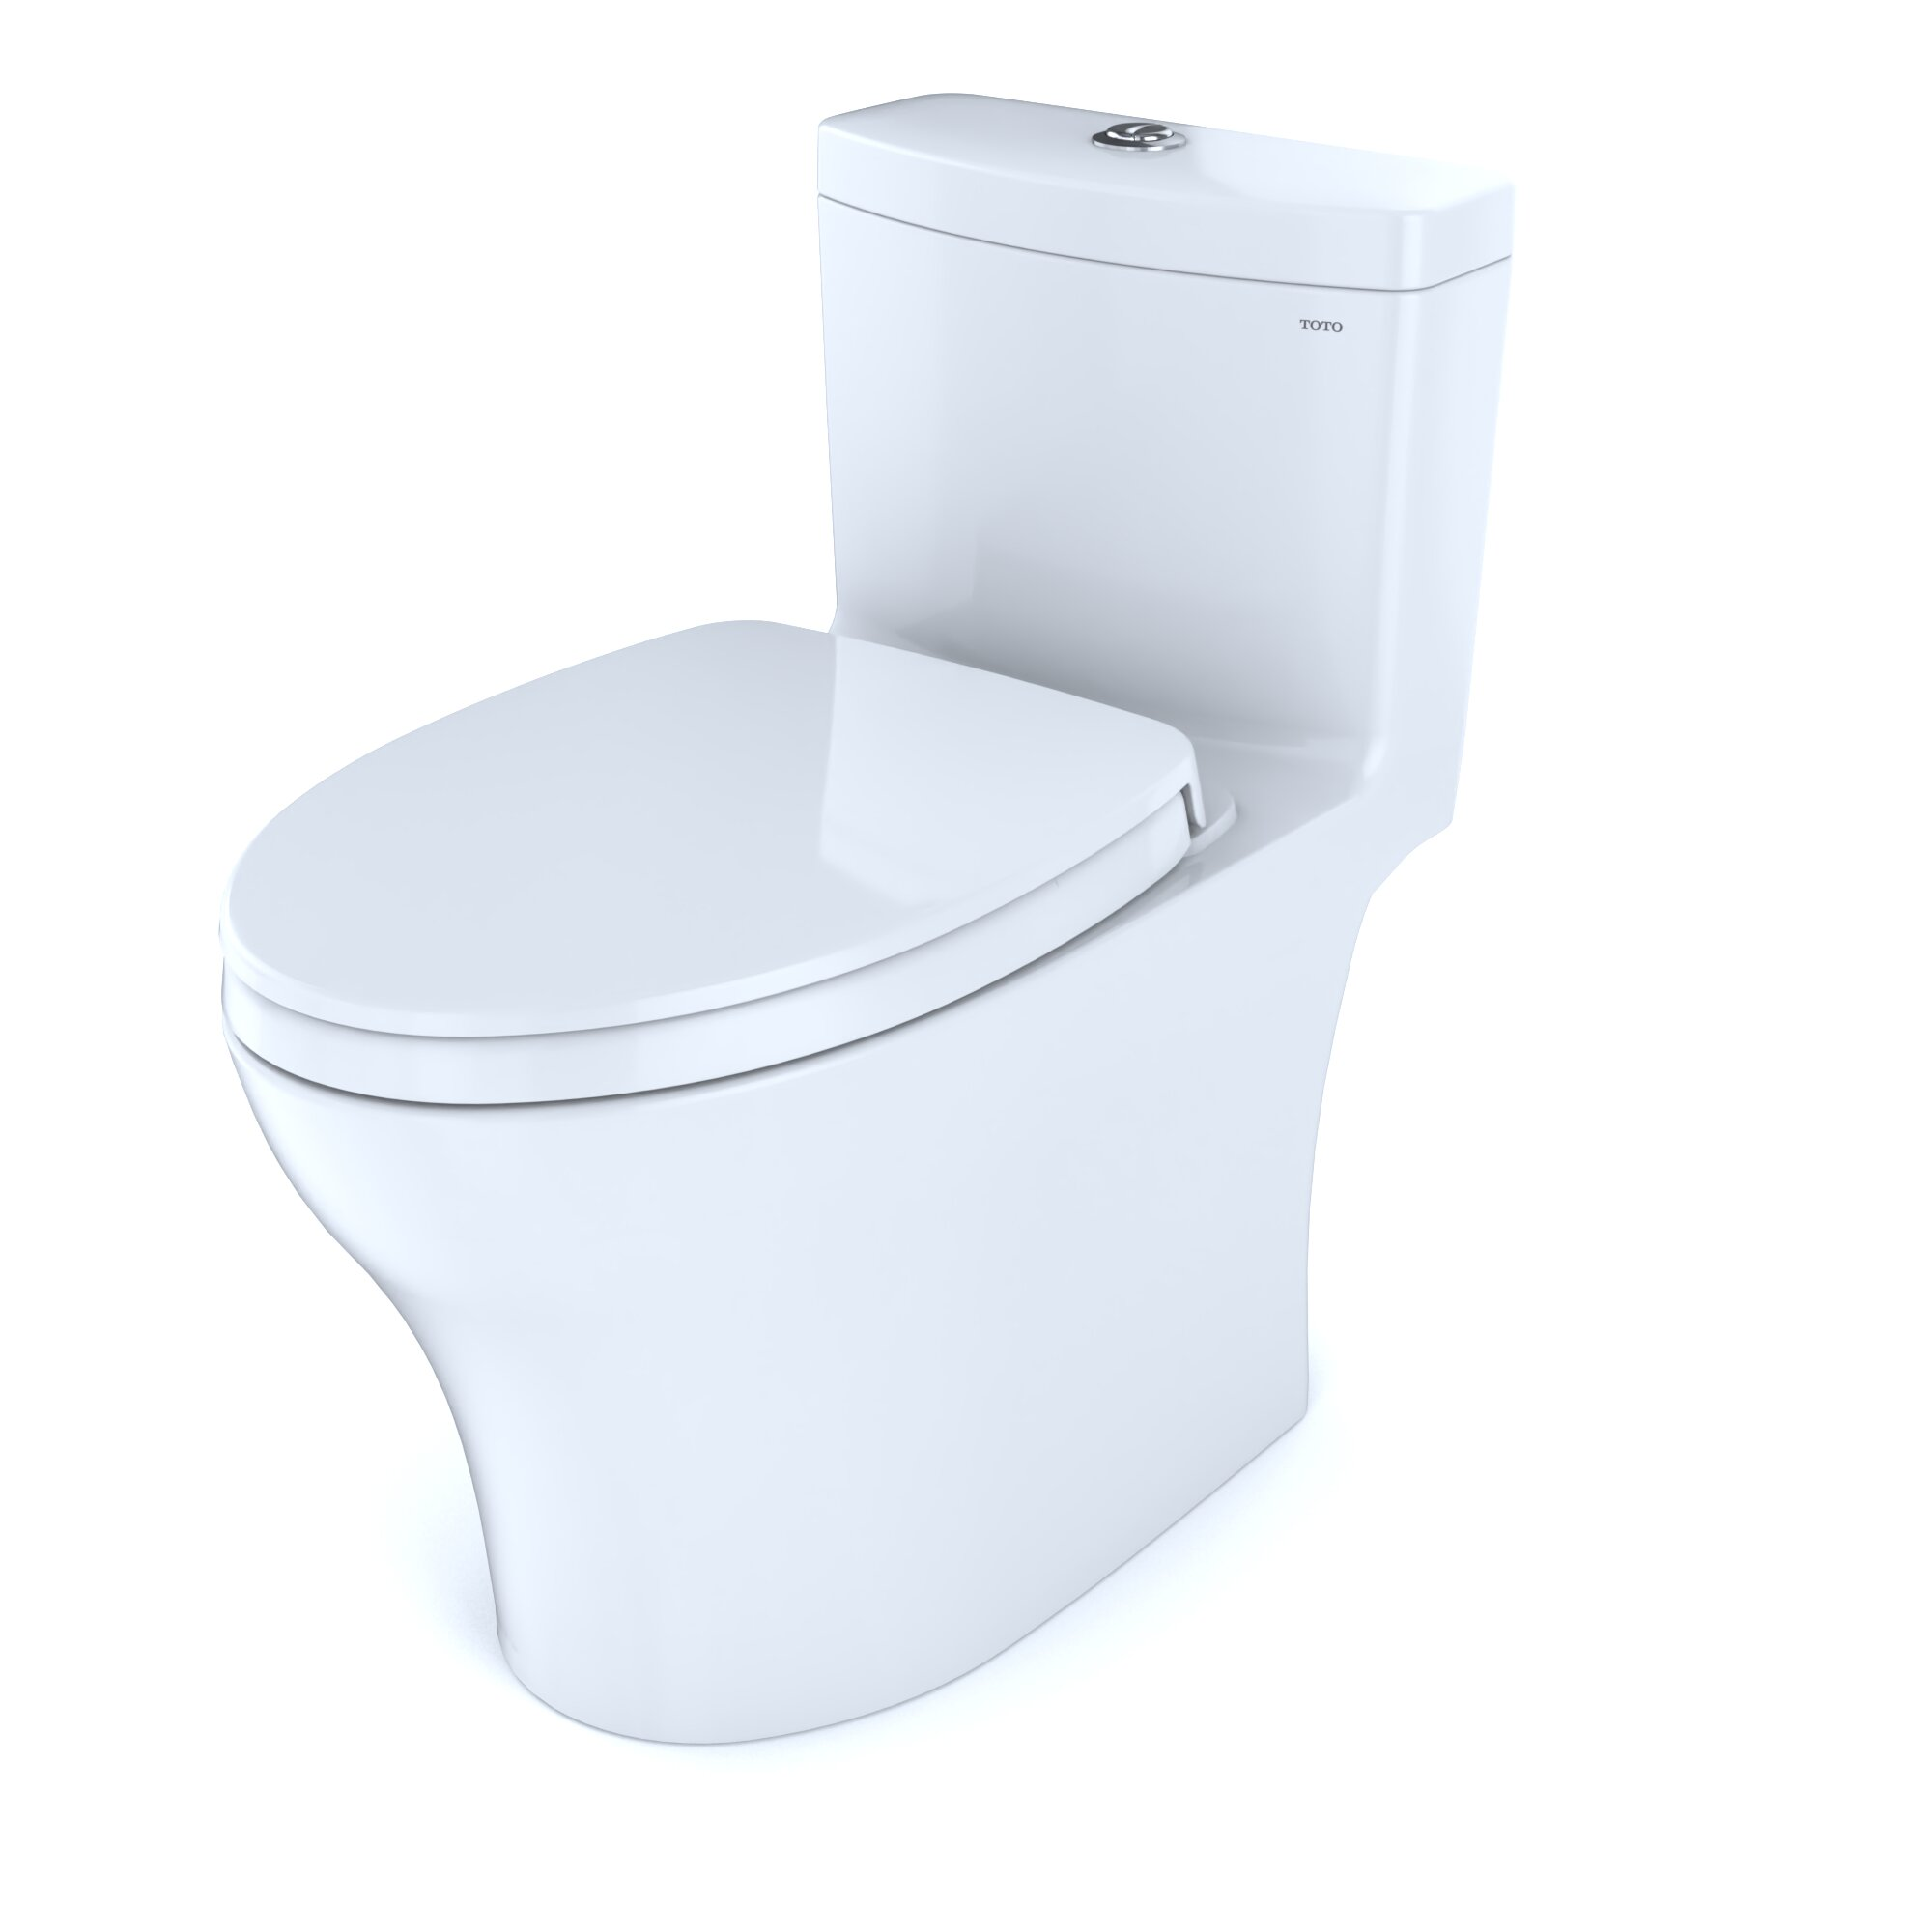 Toto Aquia Iv Dual Flush Elongated One Piece Toilet Seat Included Reviews Wayfair